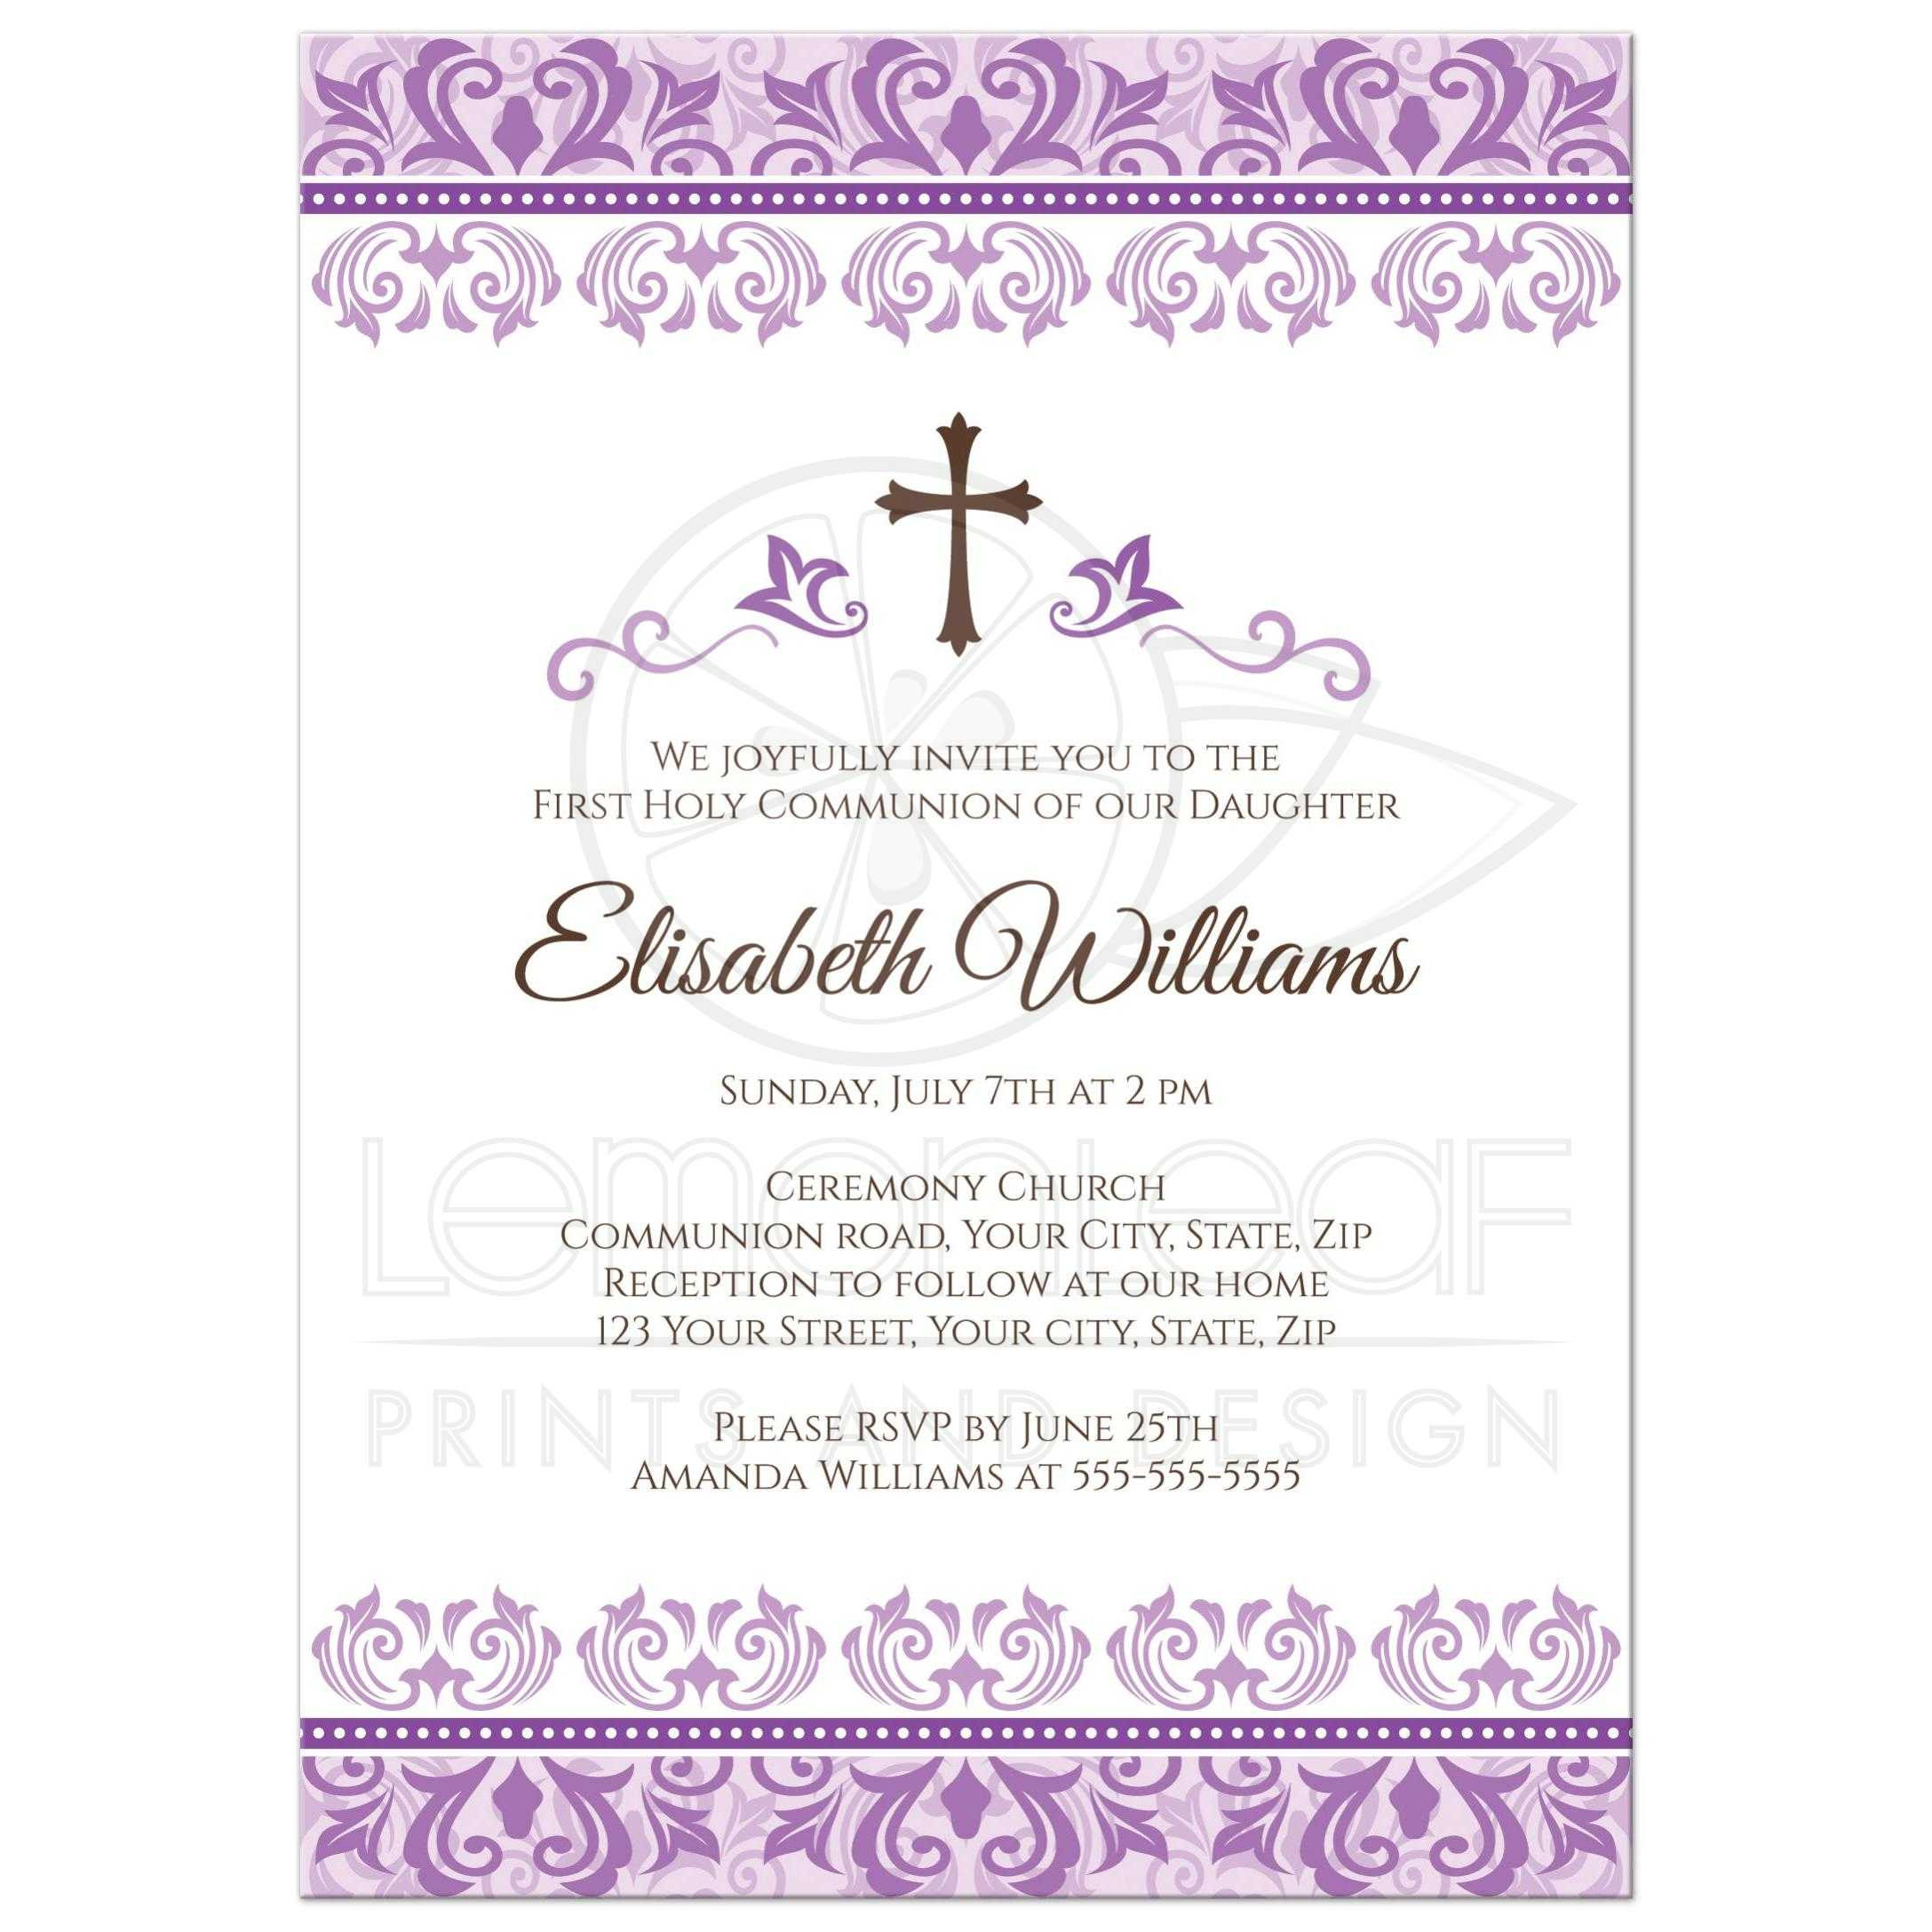 16967_Rectangle_Front_Elegant_purple_damask_first_holy_communion_or_confirmation_invitation_for_girls_RGB_from_CMYK